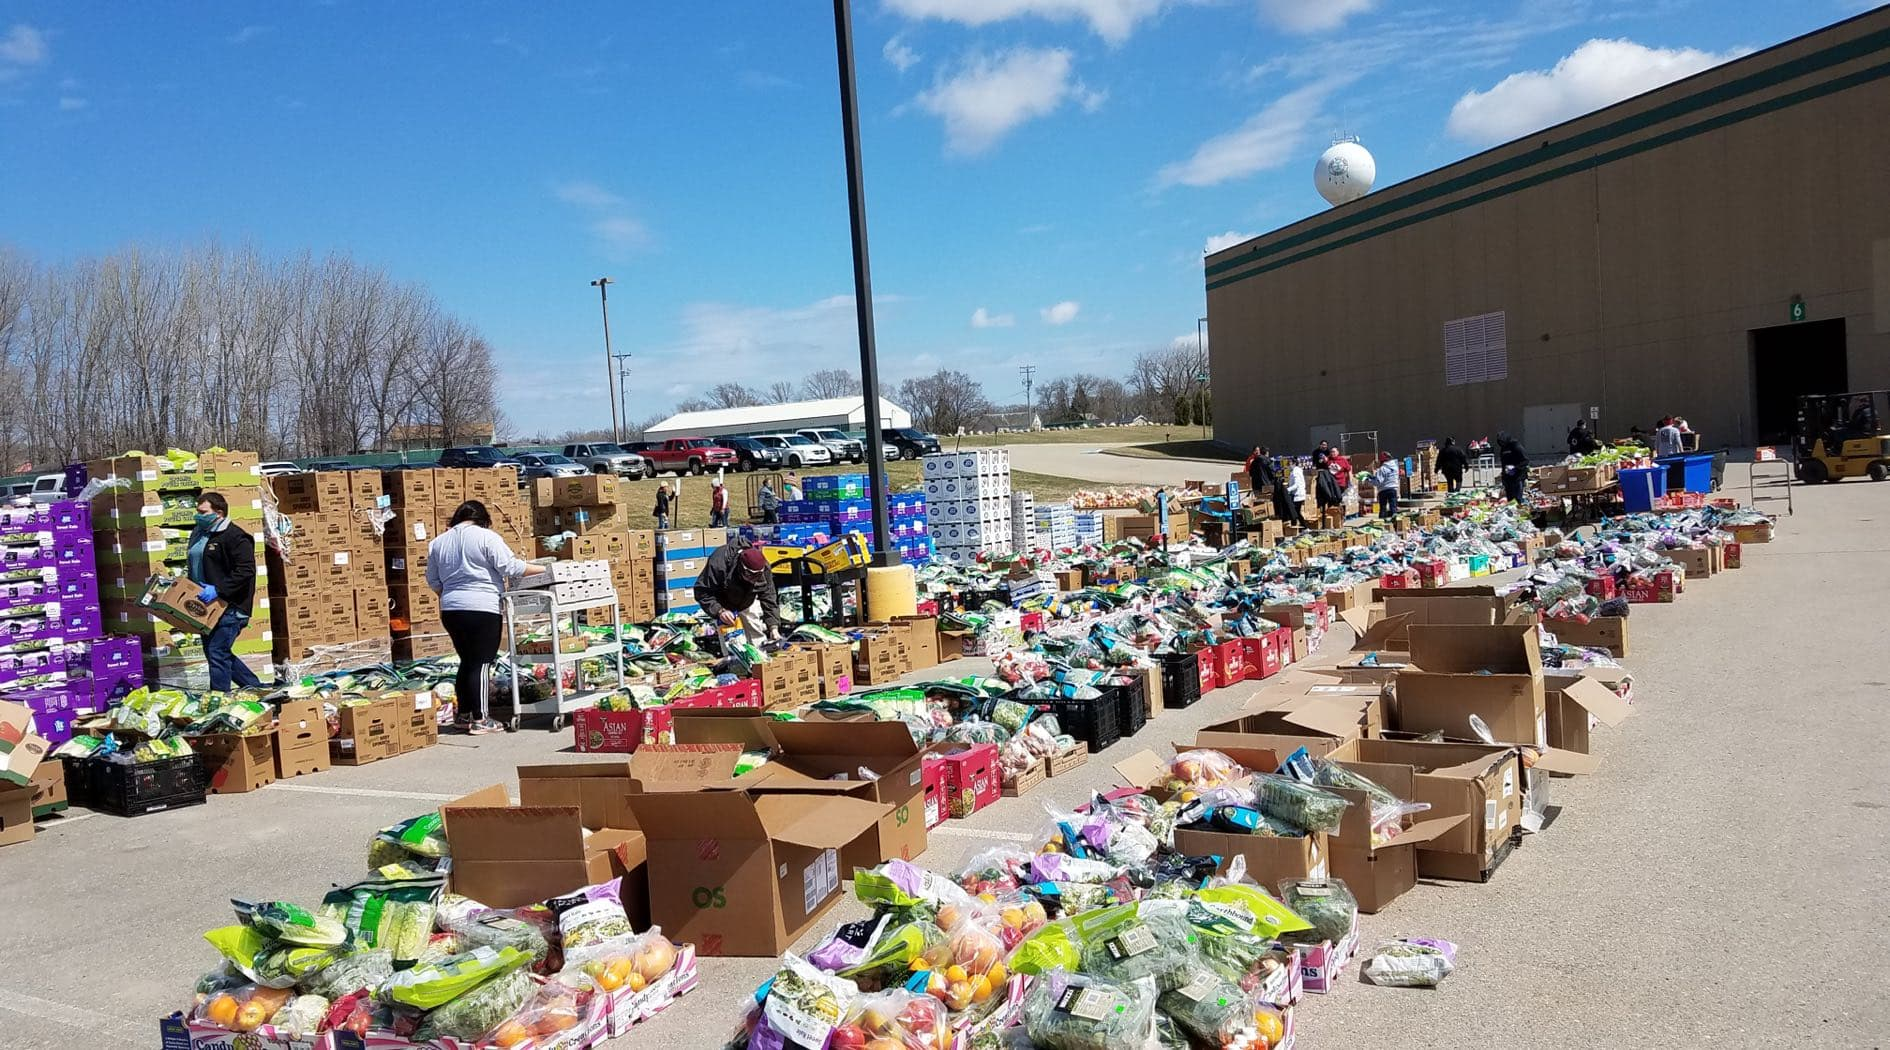 Hundreds of boxes full of food donations outside a warehouse, and volunteers using carts to transport boxes.